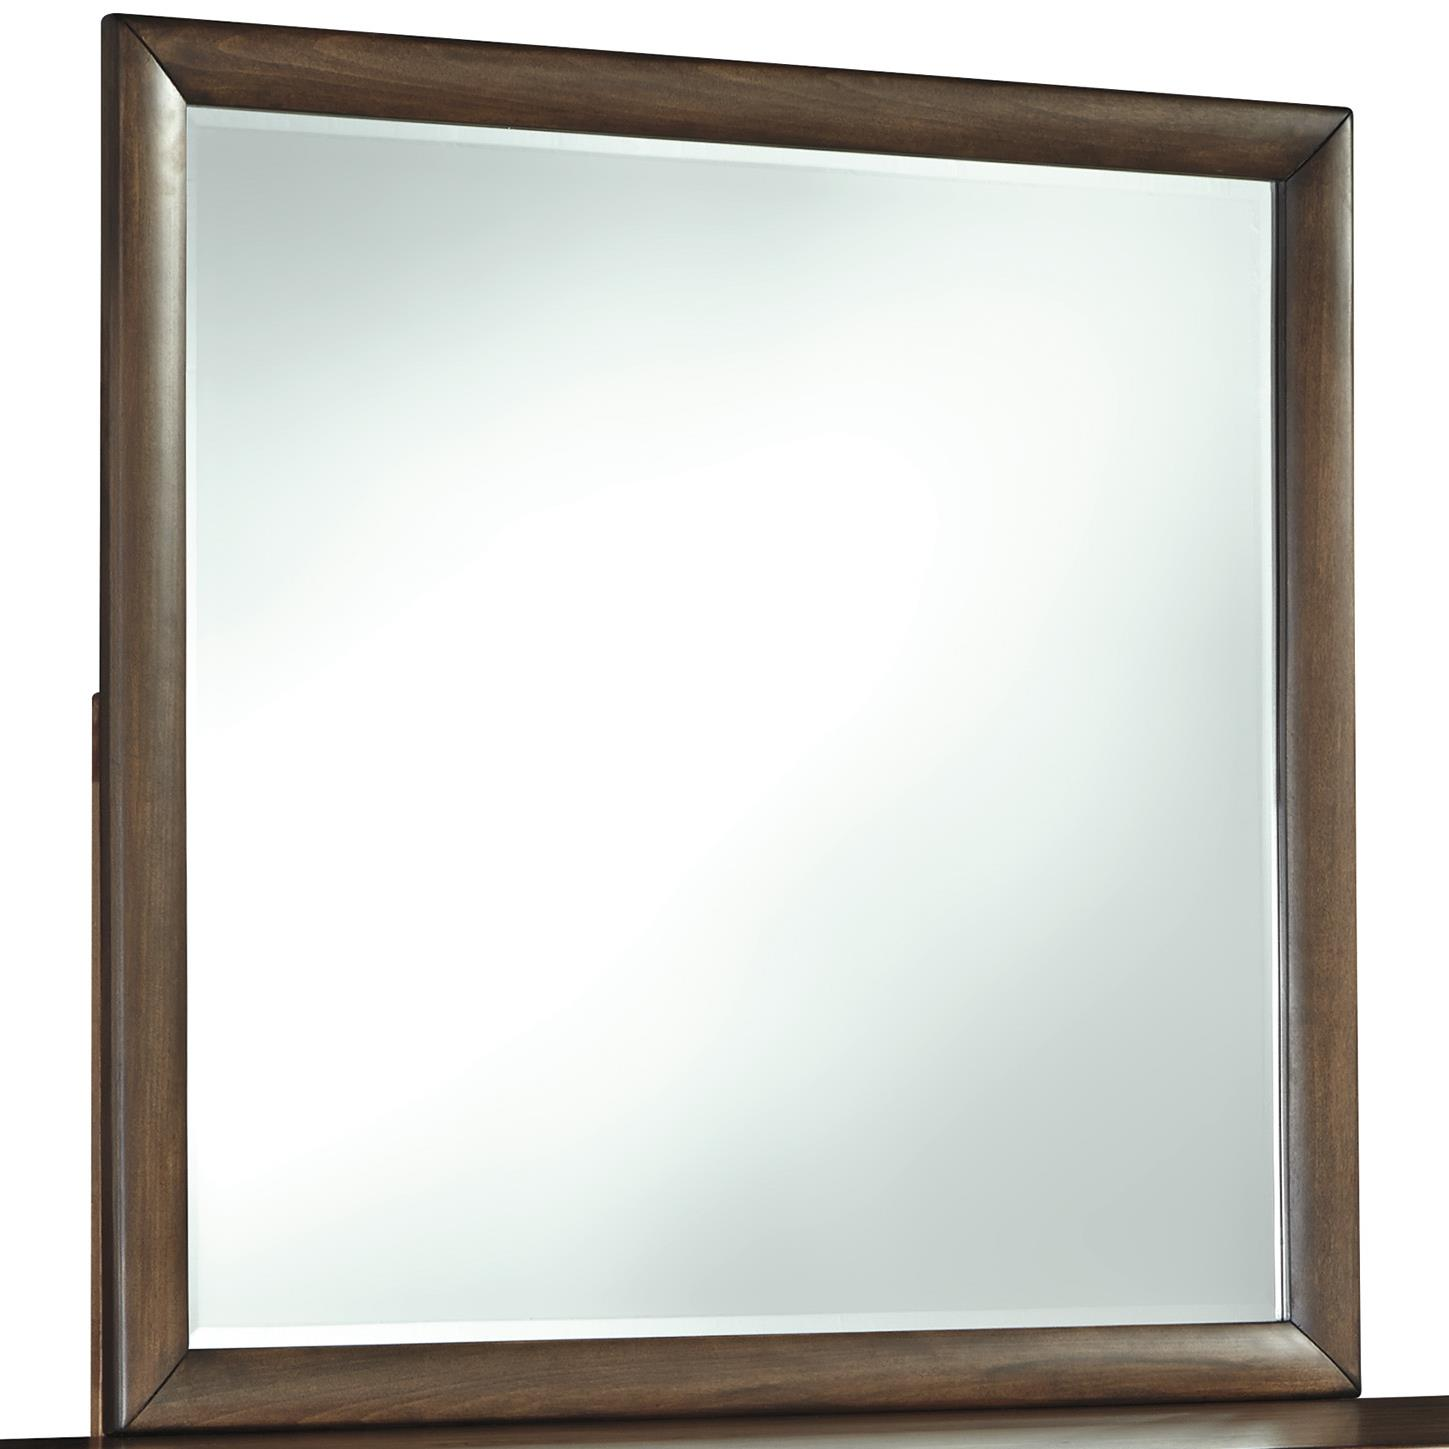 Signature Design by Ashley Debeaux Bedroom Mirror - Item Number: B535-36